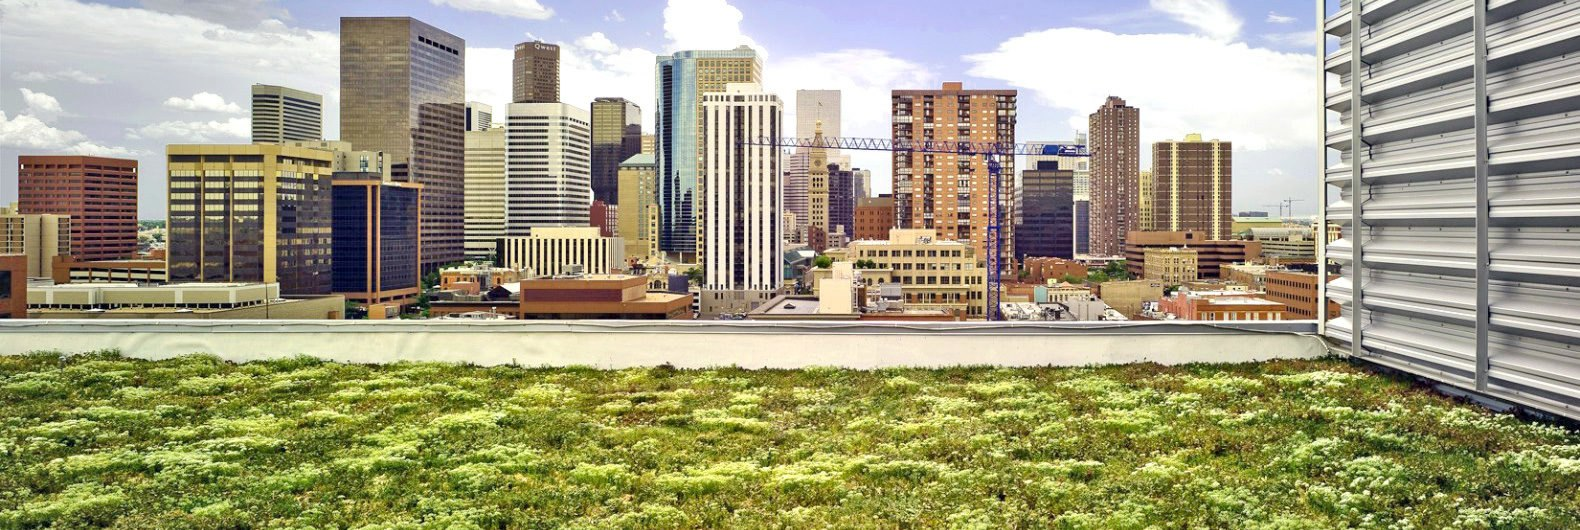 Denver To Vote On Green Roof Mandate For New Large